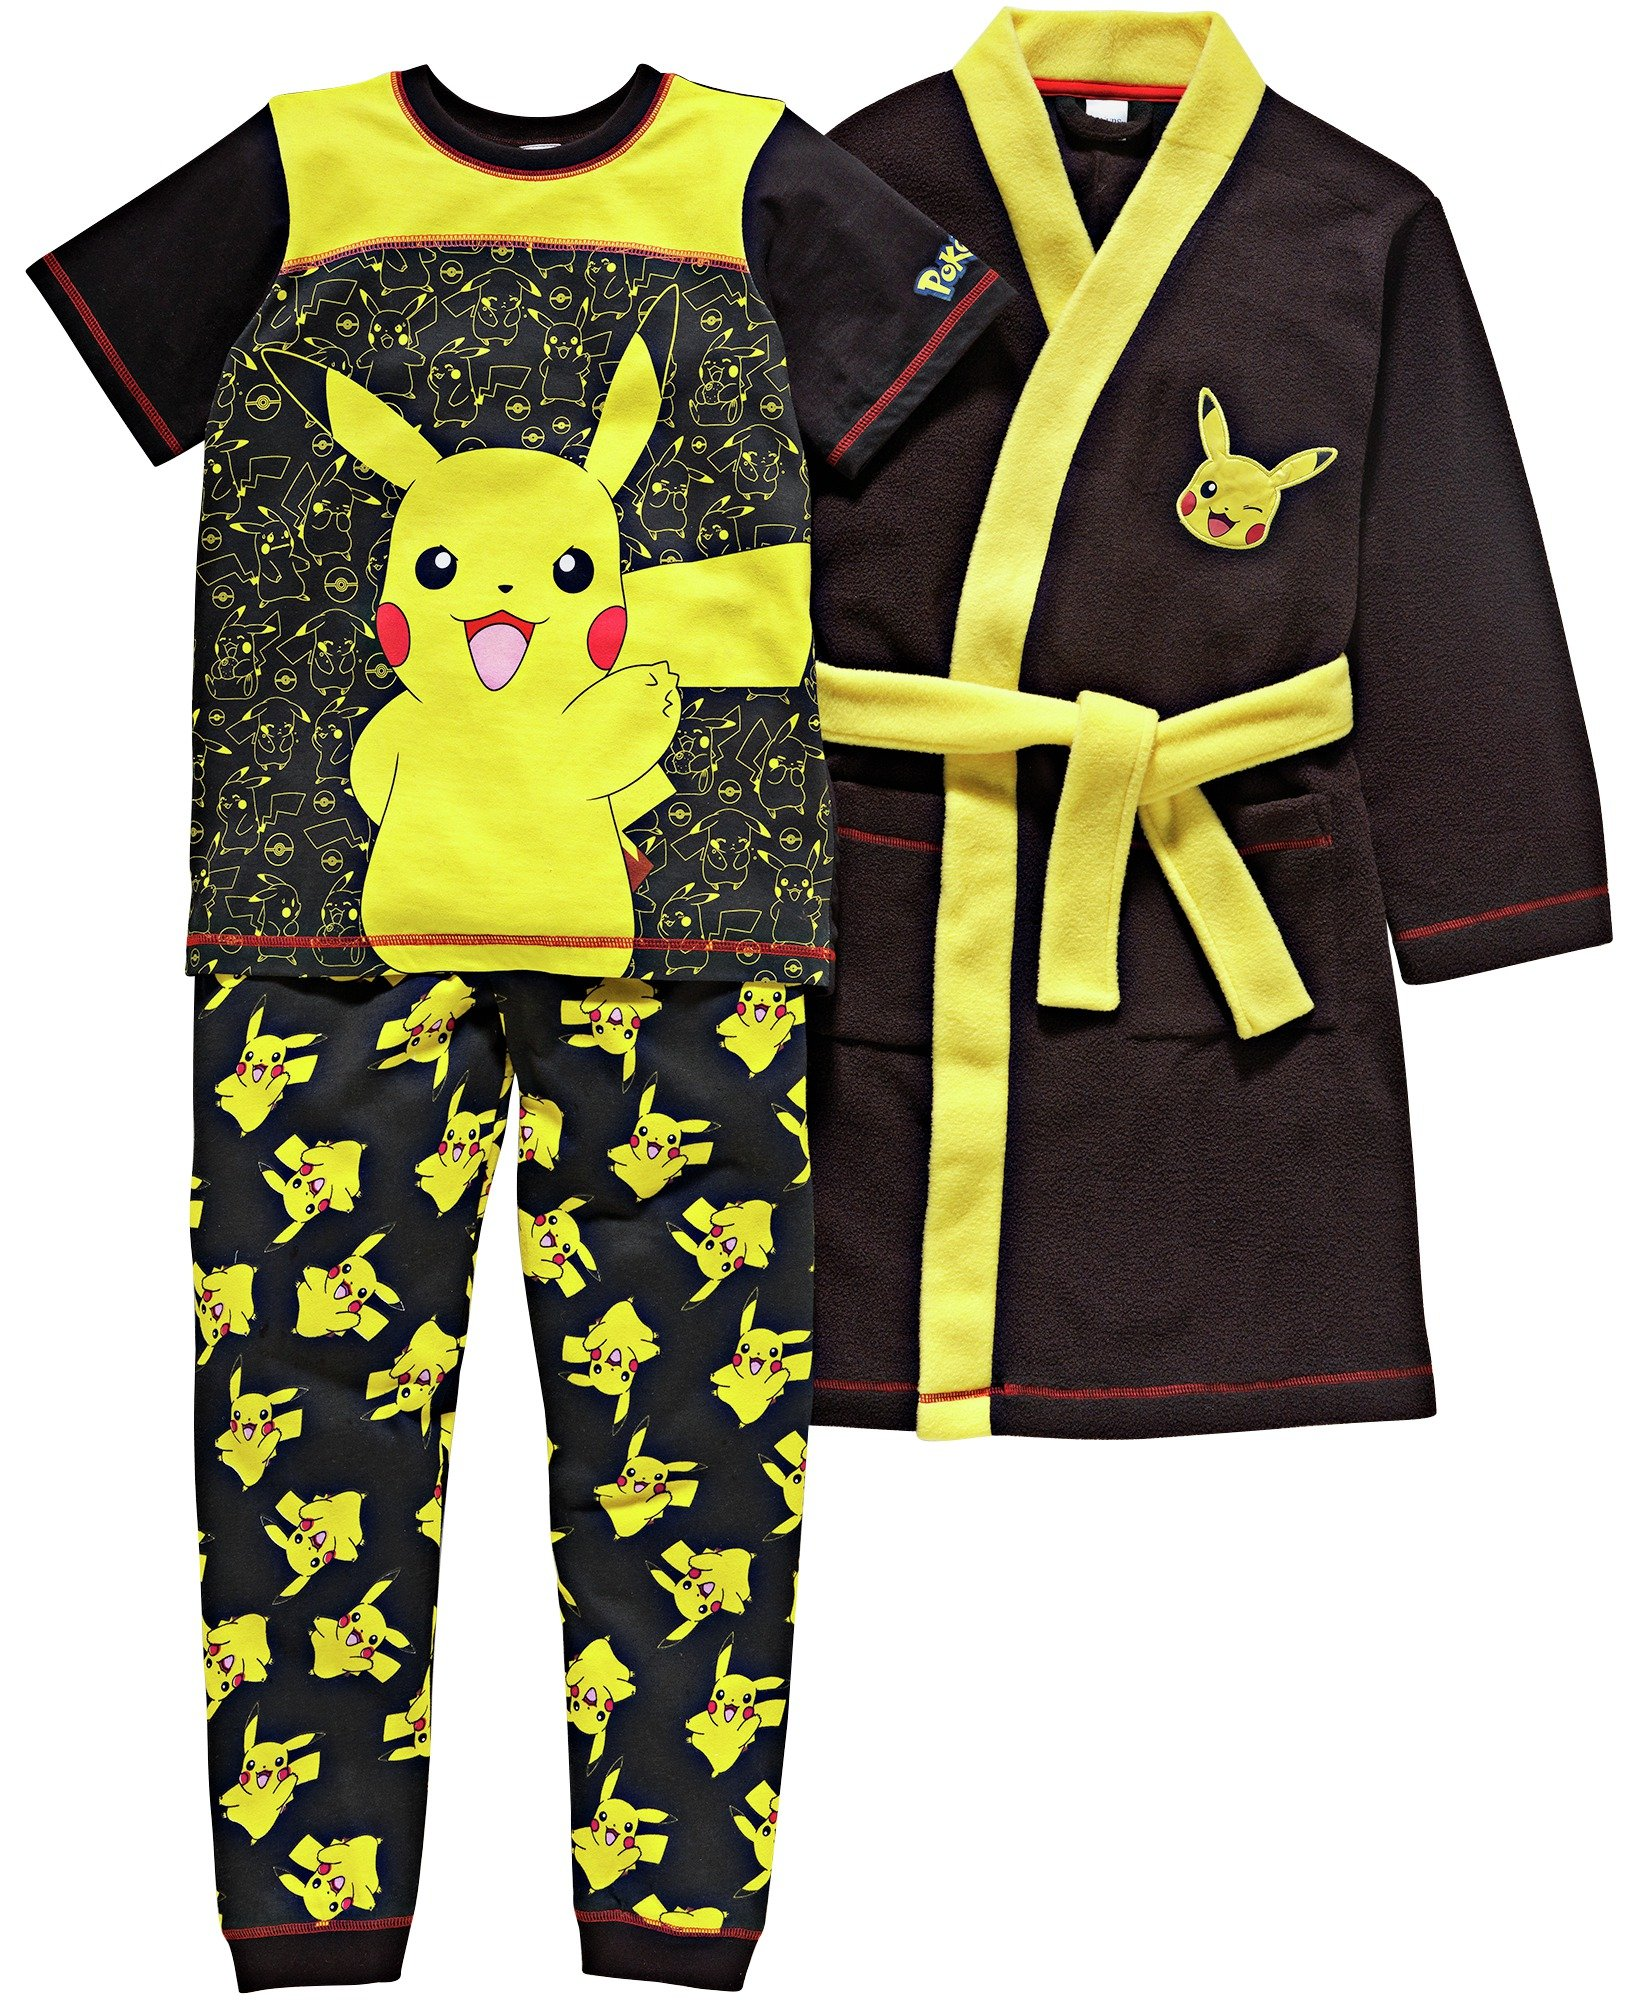 Pokemon Pyjamas and Robe Set - 7-8 Years